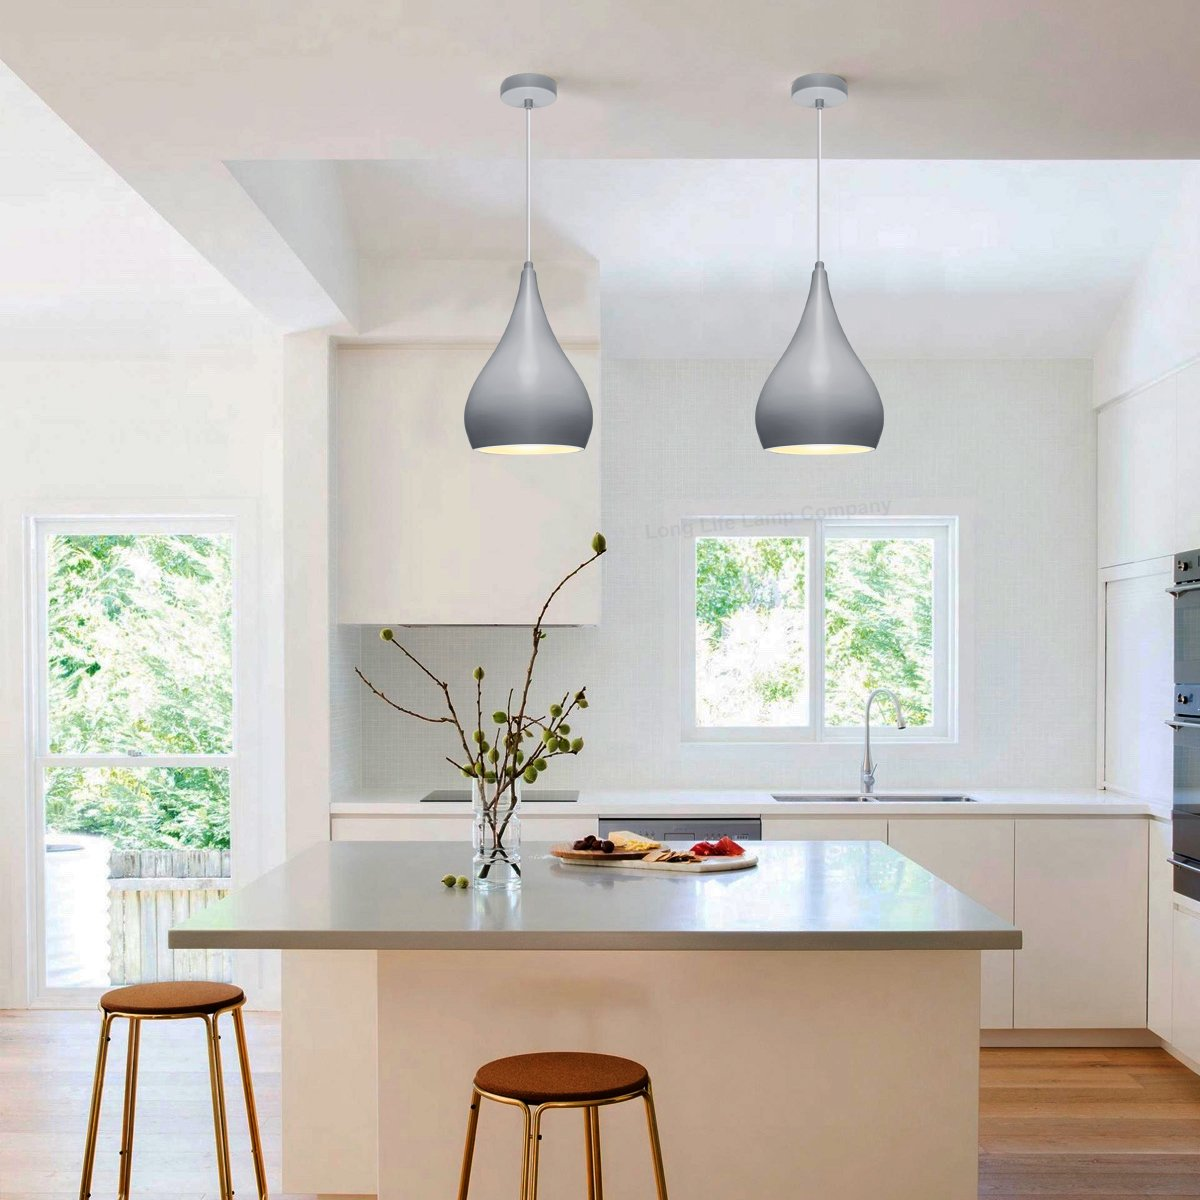 Retro Style Metal Ceiling Hanging Pendant Light Shade Modern Design Lightceilingrose2lightsjpg Rose Fittings In A Choice Of 2 Colour Options Each Features Co Ordinating White Flex Just Like The Old